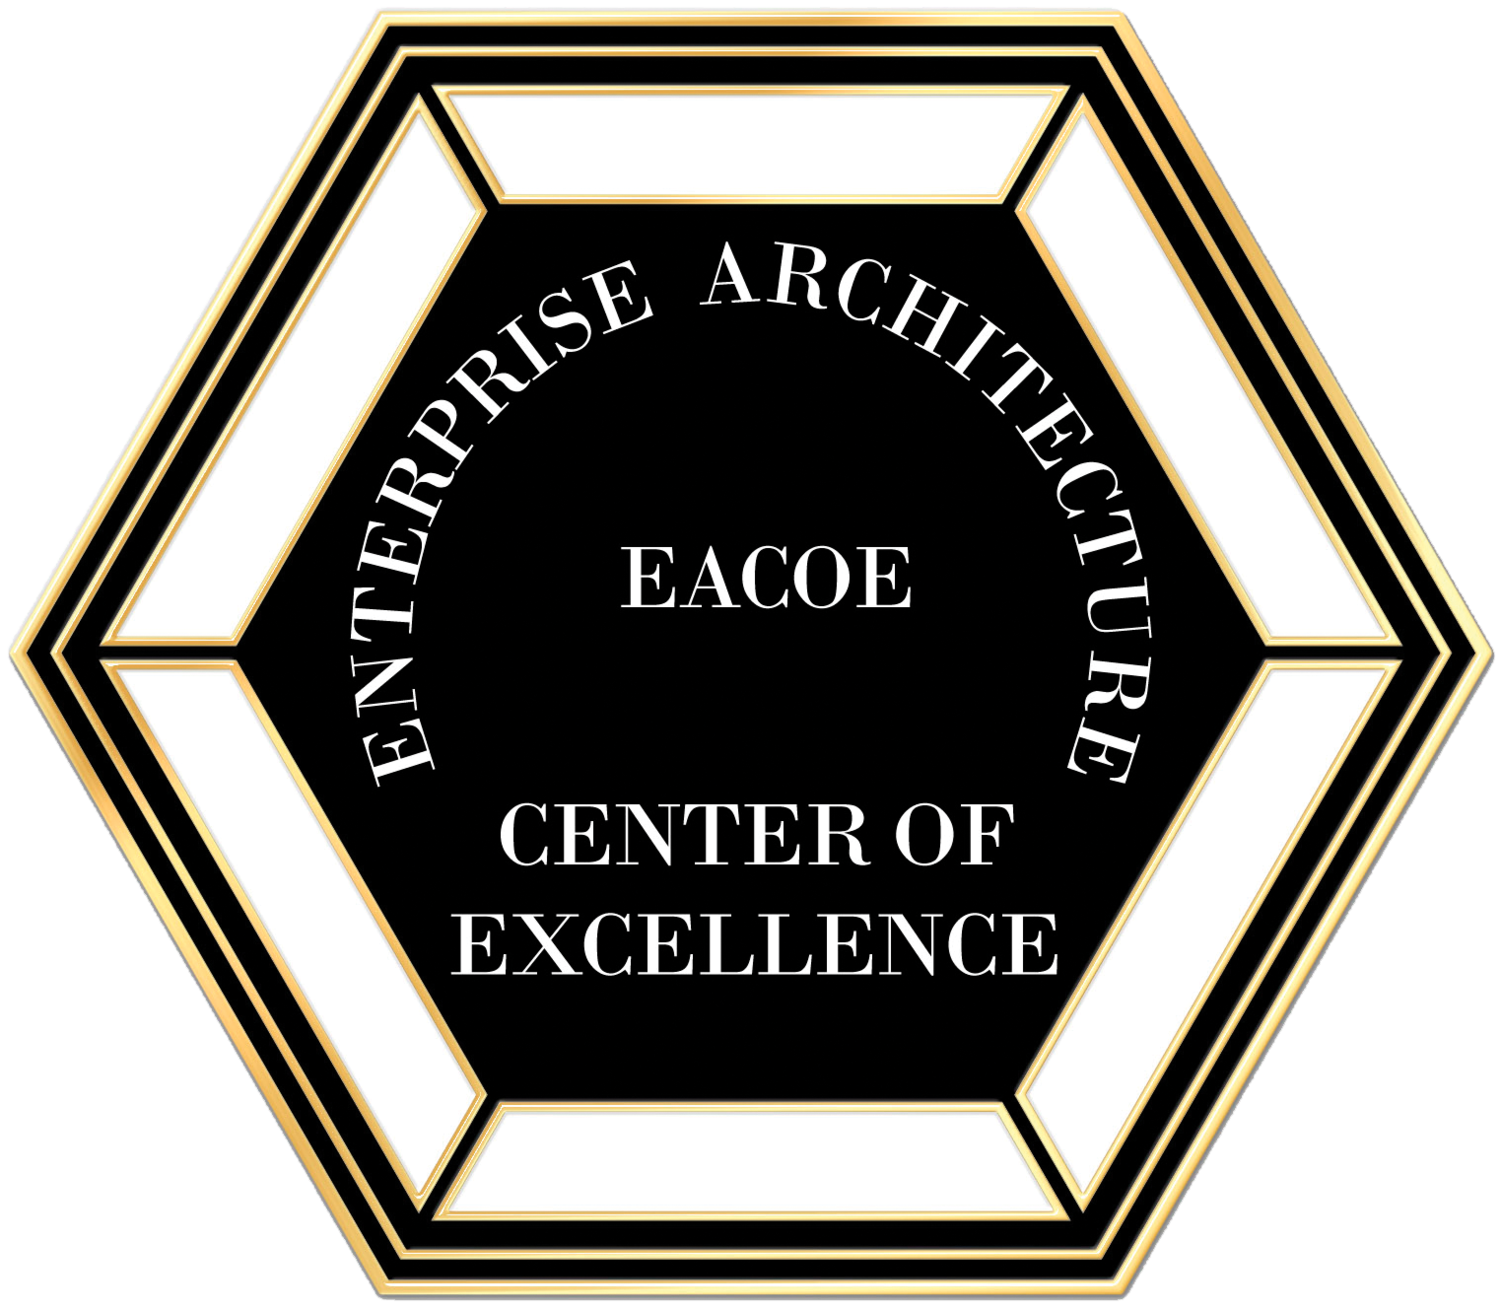 Enterprise Architecture Center of Excellence